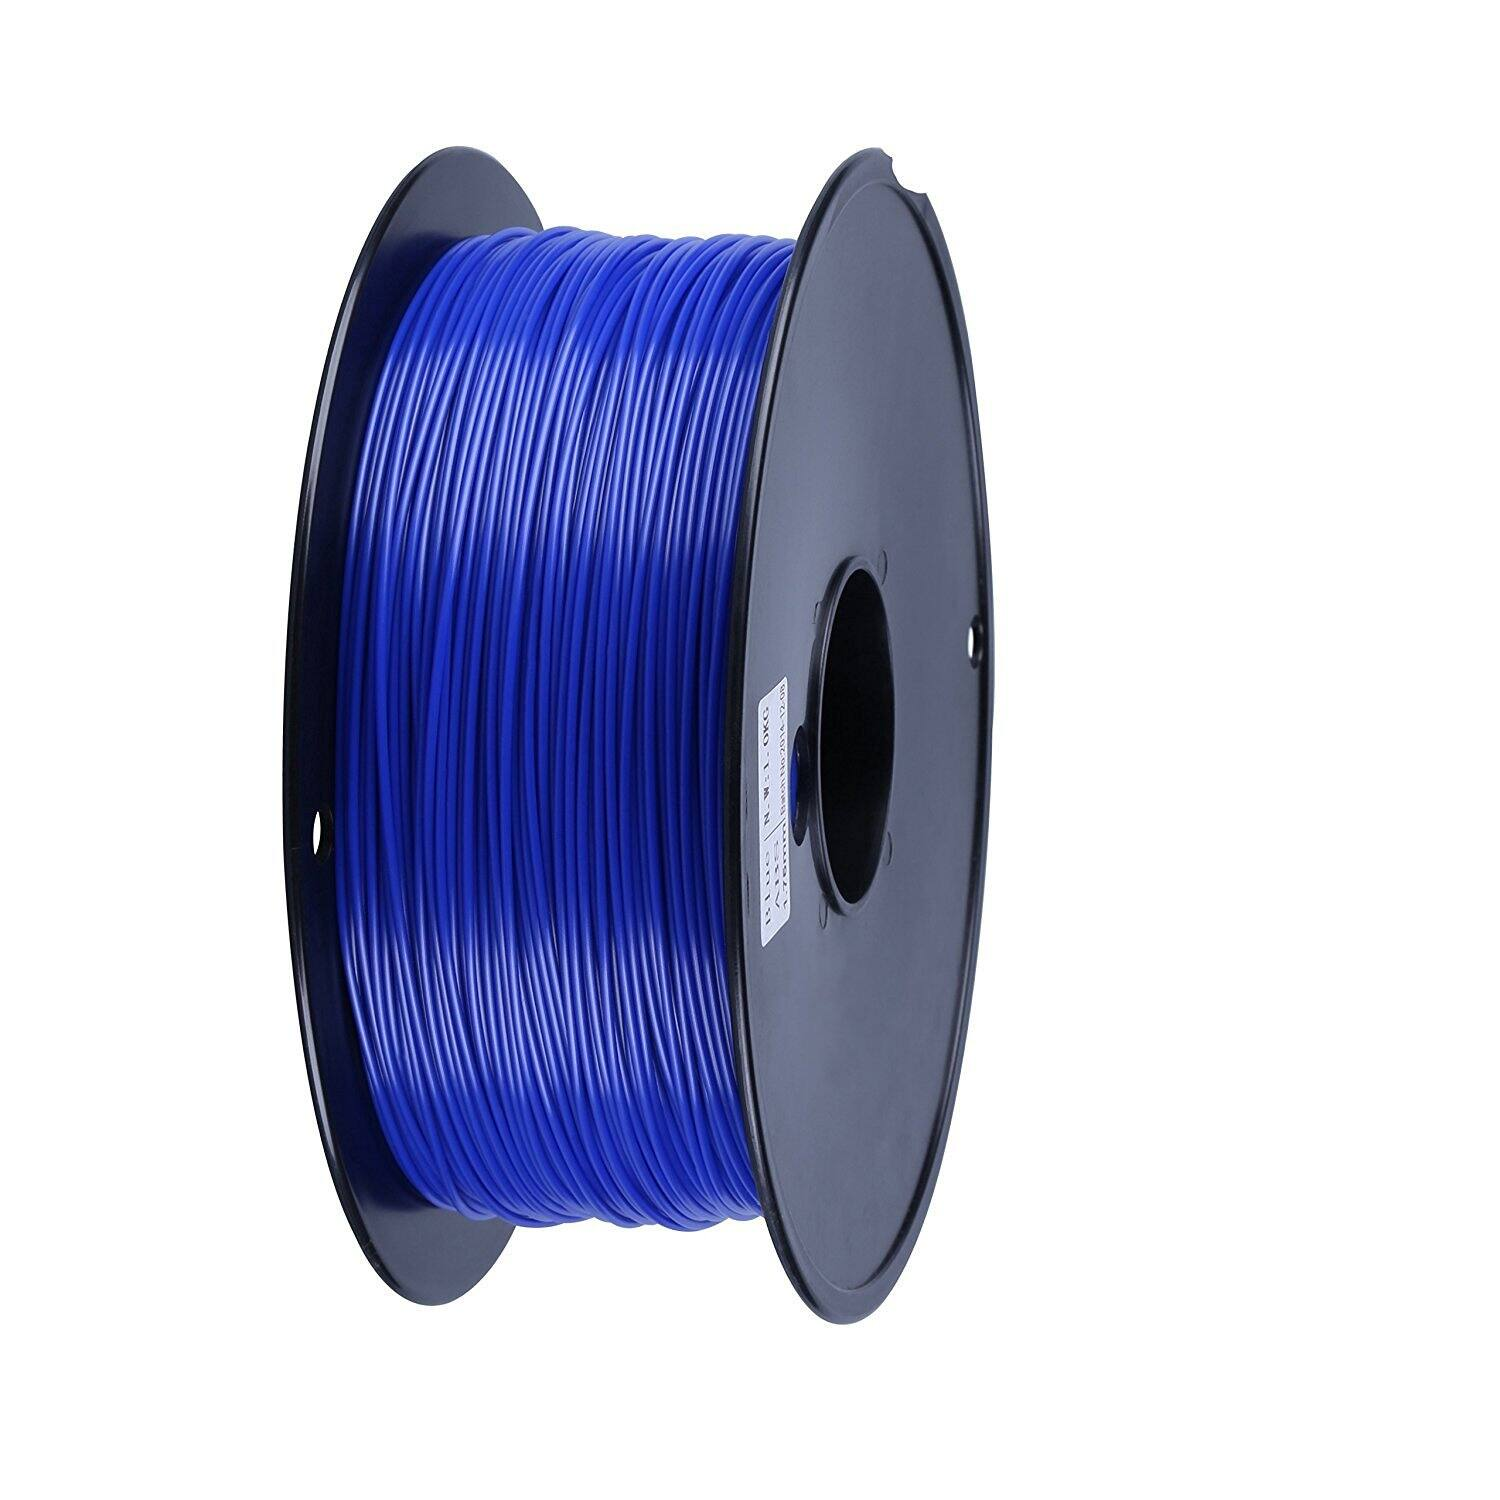 FunFlag 3D Printer Filament (PLA, ABS) 1kg starting from $7.99 Various colors @ Amazon